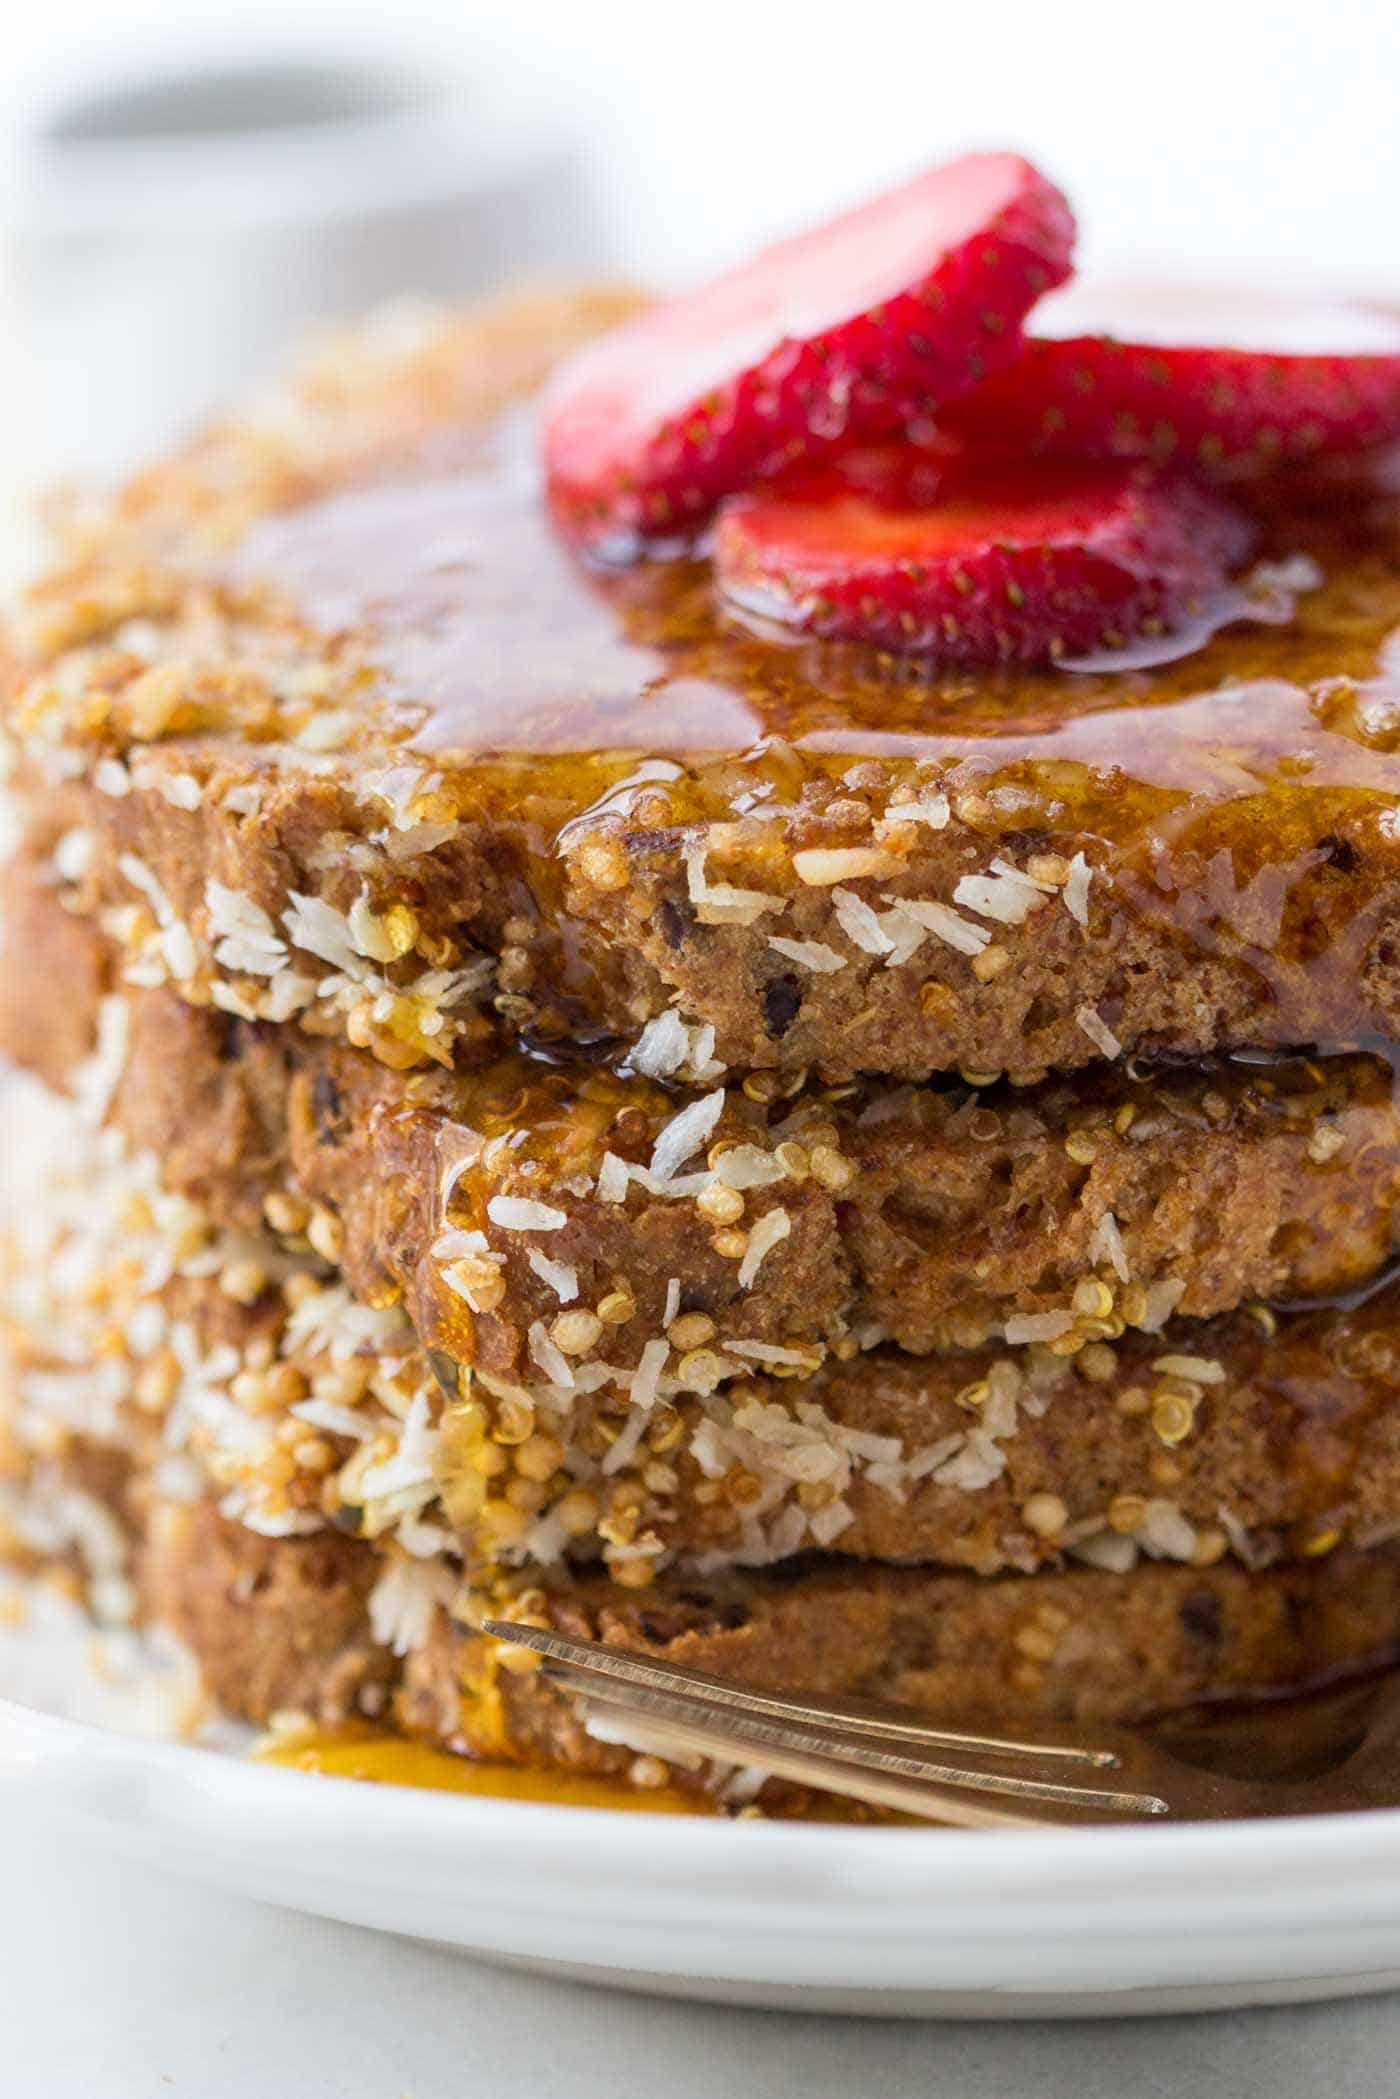 VEGAN FRENCH TOAST crusted in coconut and quinoa...so simple and just the most decadent way to star the day!